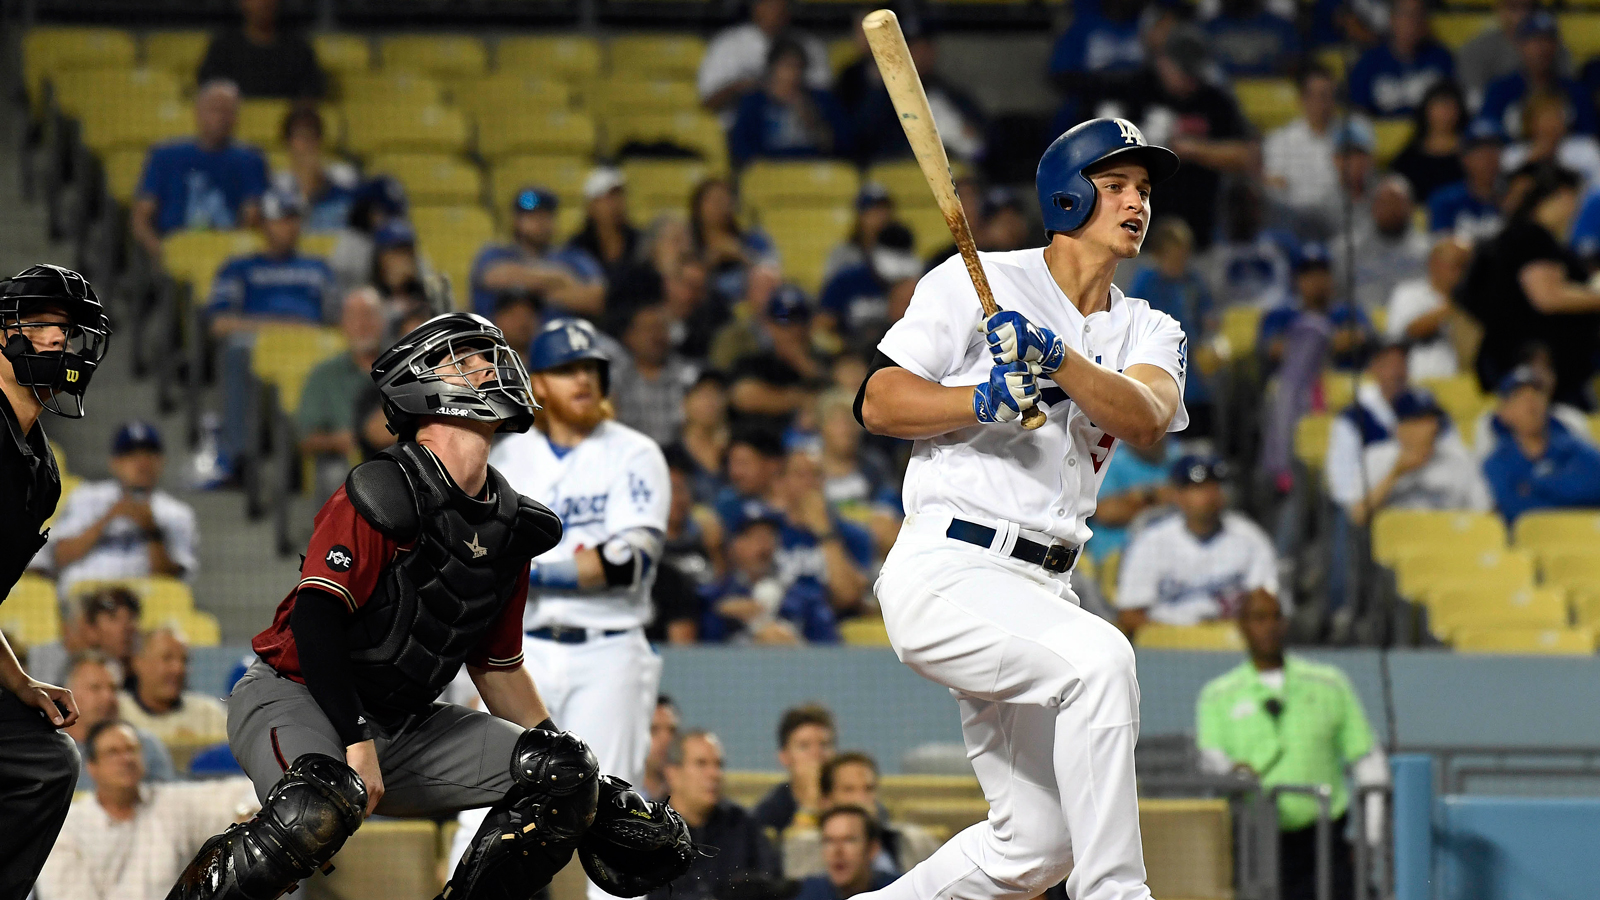 NL West: Dodgers move to 5 games up in division